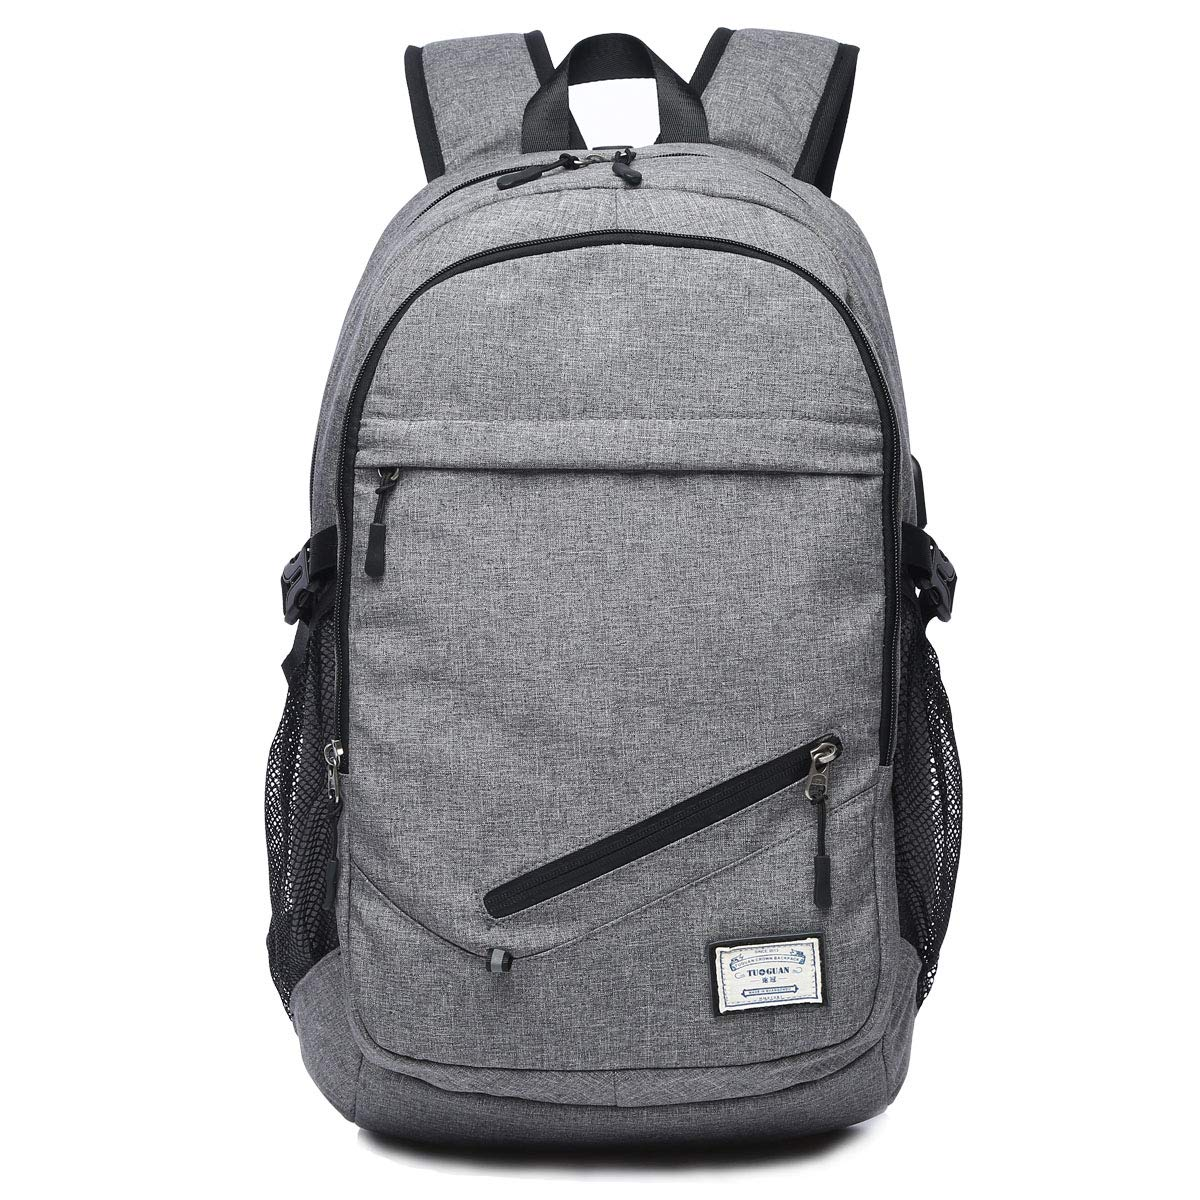 Business Backpack for Boys or Men, Laptop Backpack with USB Charging Ports, Canvas Waterproof Backpack for Sports, Grey Backpack for Students at College or ...